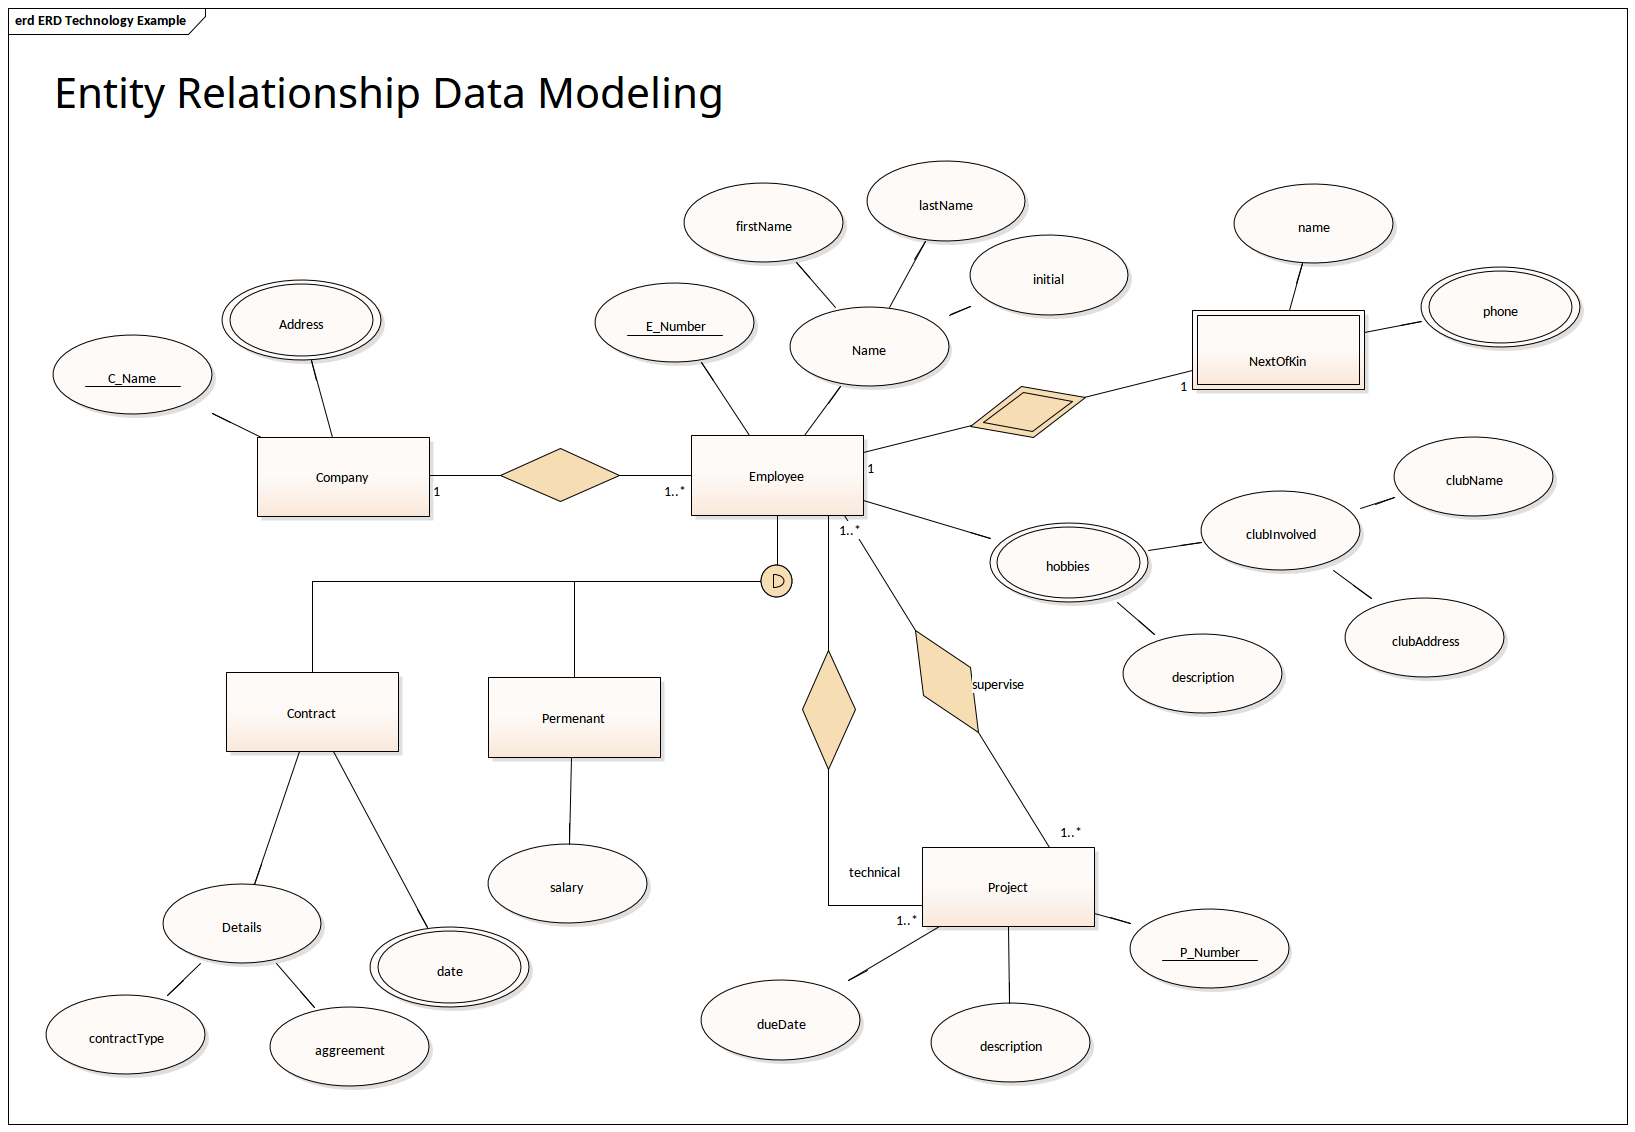 Entity Relationship Data Modeling | Enterprise Architect regarding Entity Relationship Model Diagram